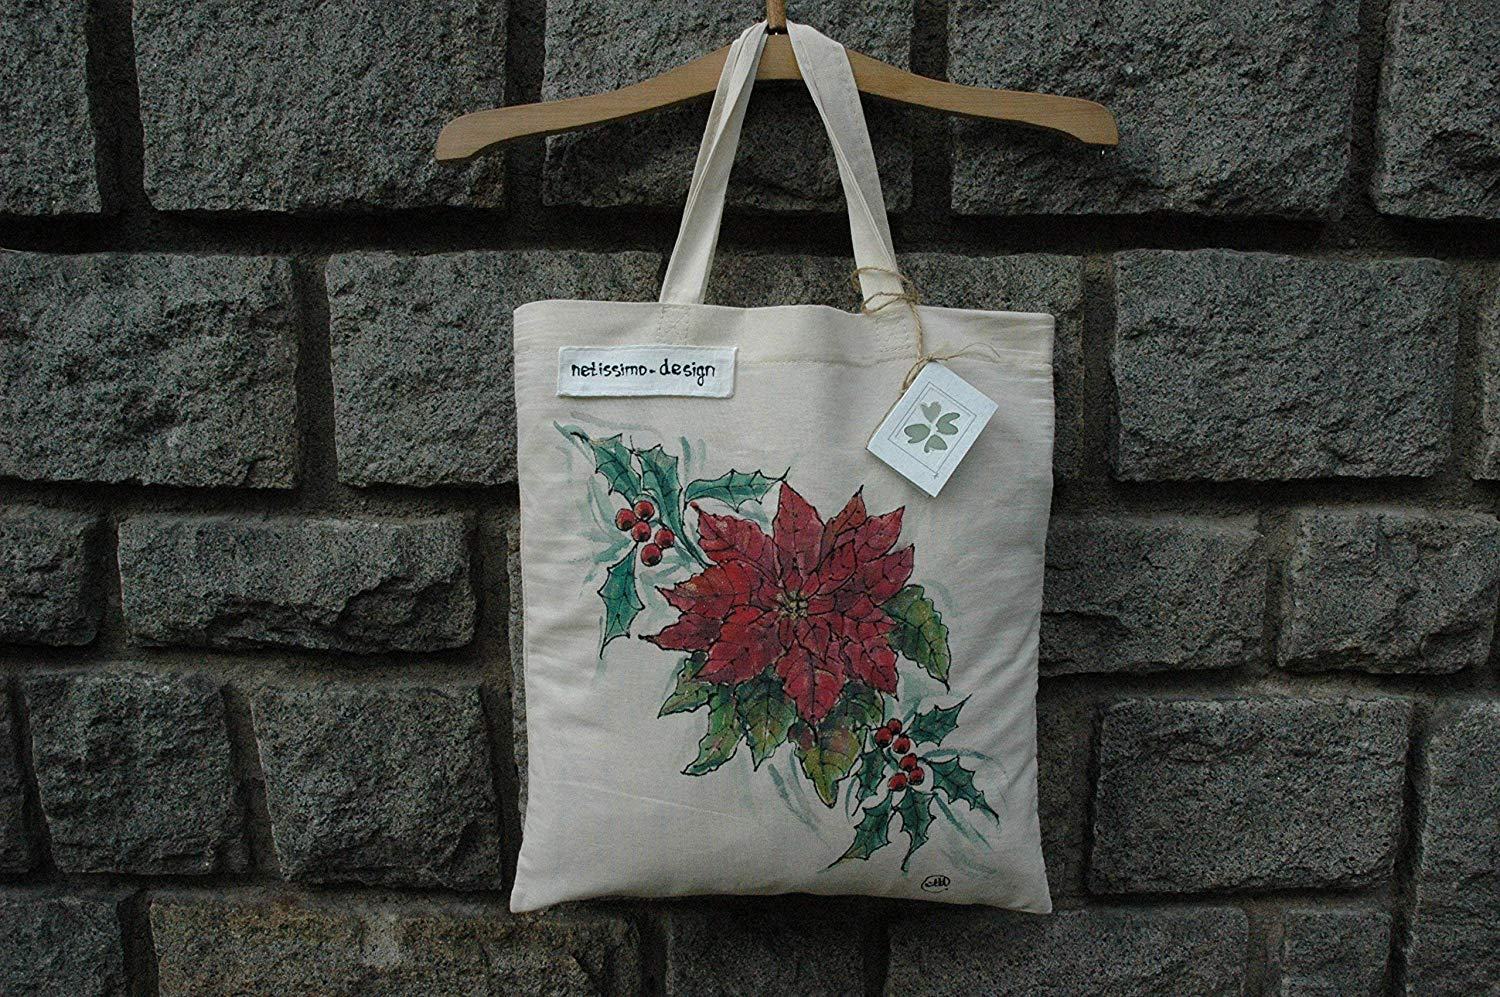 Sale!!!15% Off,Christmas gift Mom,Hand Painted Canvas Bag,Christmas Tote Bag,Christmas Shopping Bag,Cotton tote bag,Christmas Gifts Bags,Birthday gift Bag,White Bag,Woman Gifts,Christmas Poinsettia.